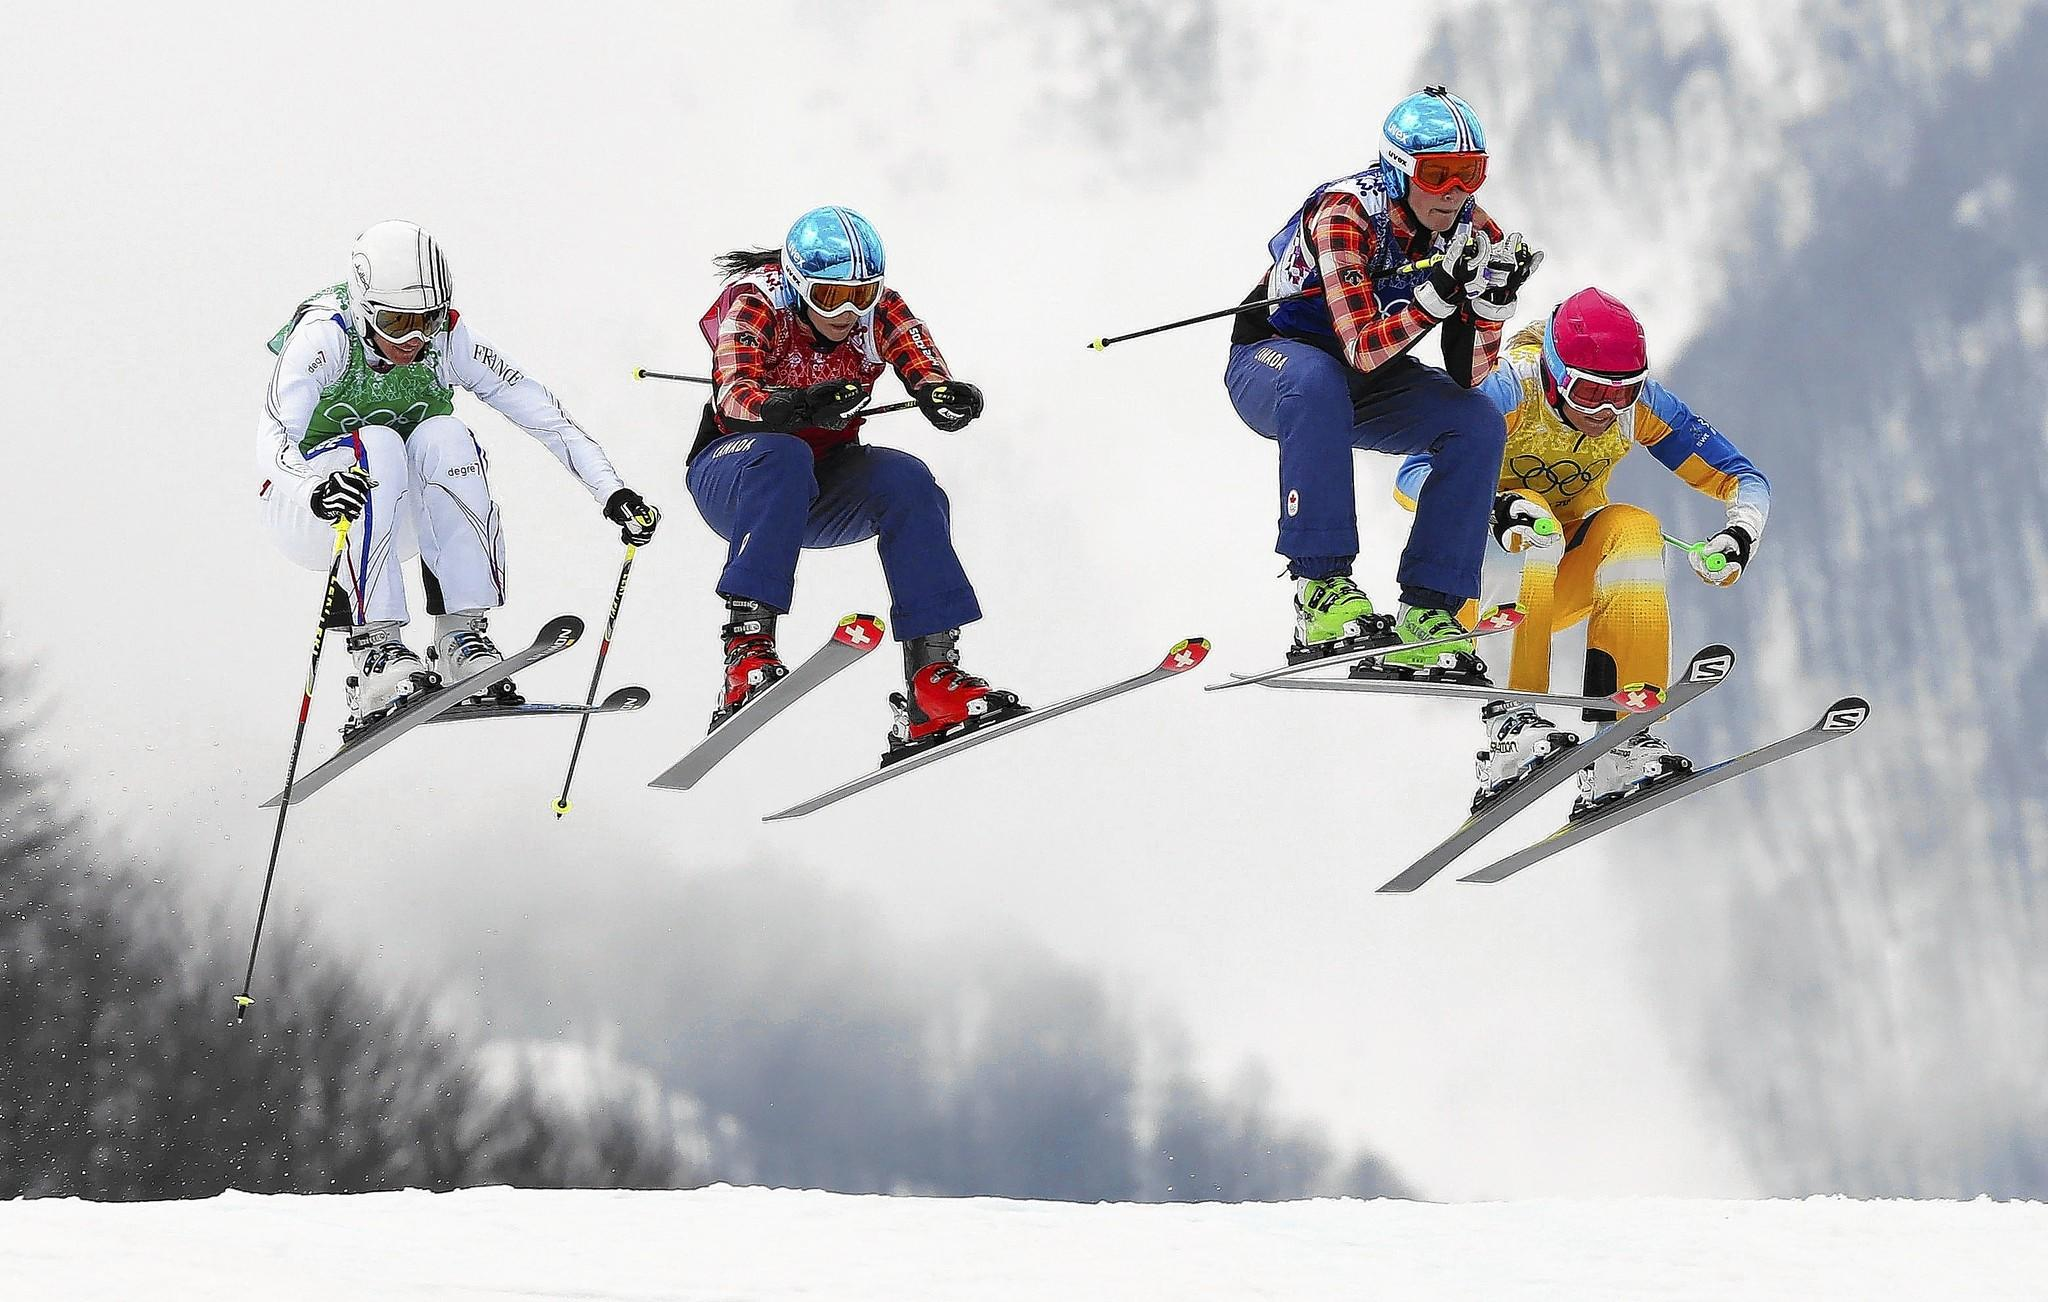 France's Ophelie David, from left, Canada's Kelsey Serwa, Canada's Marielle Thompson and Sweden's Anna Holmlund compete in the women's ski cross at the Winter Games in Sochi, Russia.